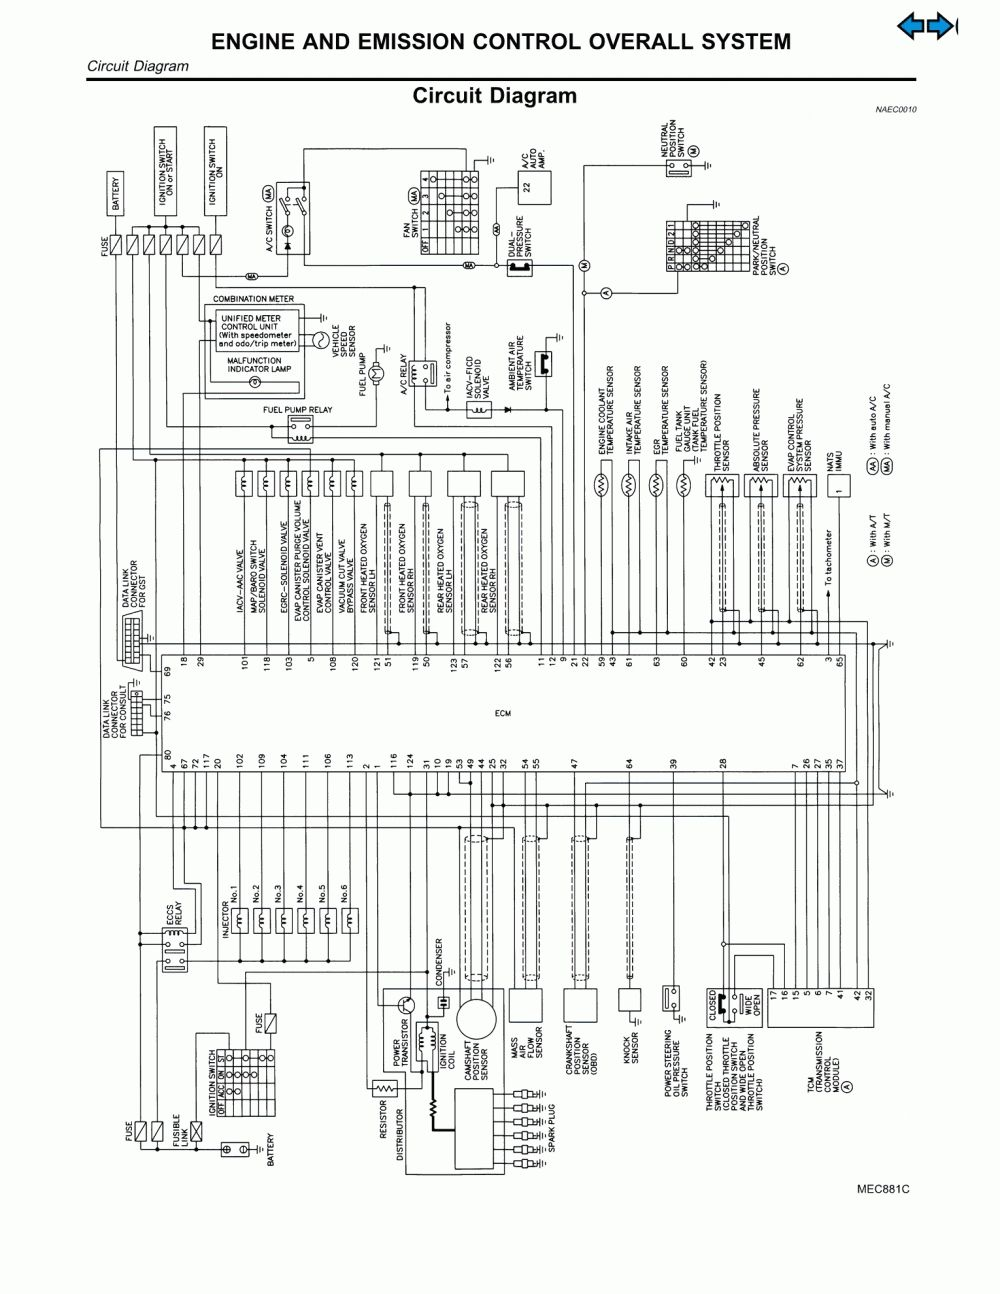 nissan wiring schematics    nissan    leaf battery    wiring    diagram wiringdiagram org     nissan    leaf battery    wiring    diagram wiringdiagram org